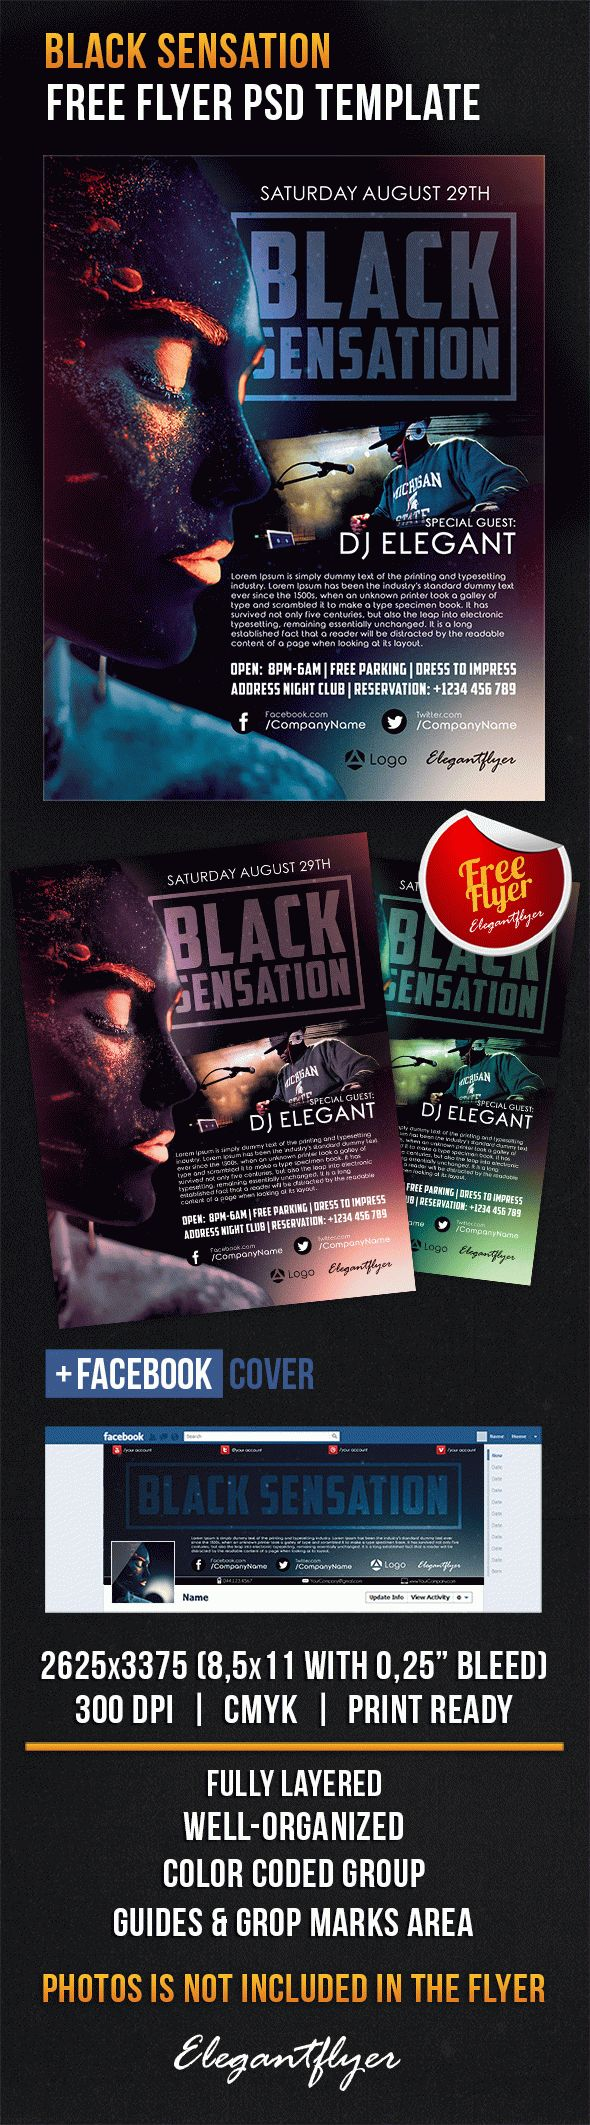 Black Sensation – Free Flyer PSD Template + Facebook Cover